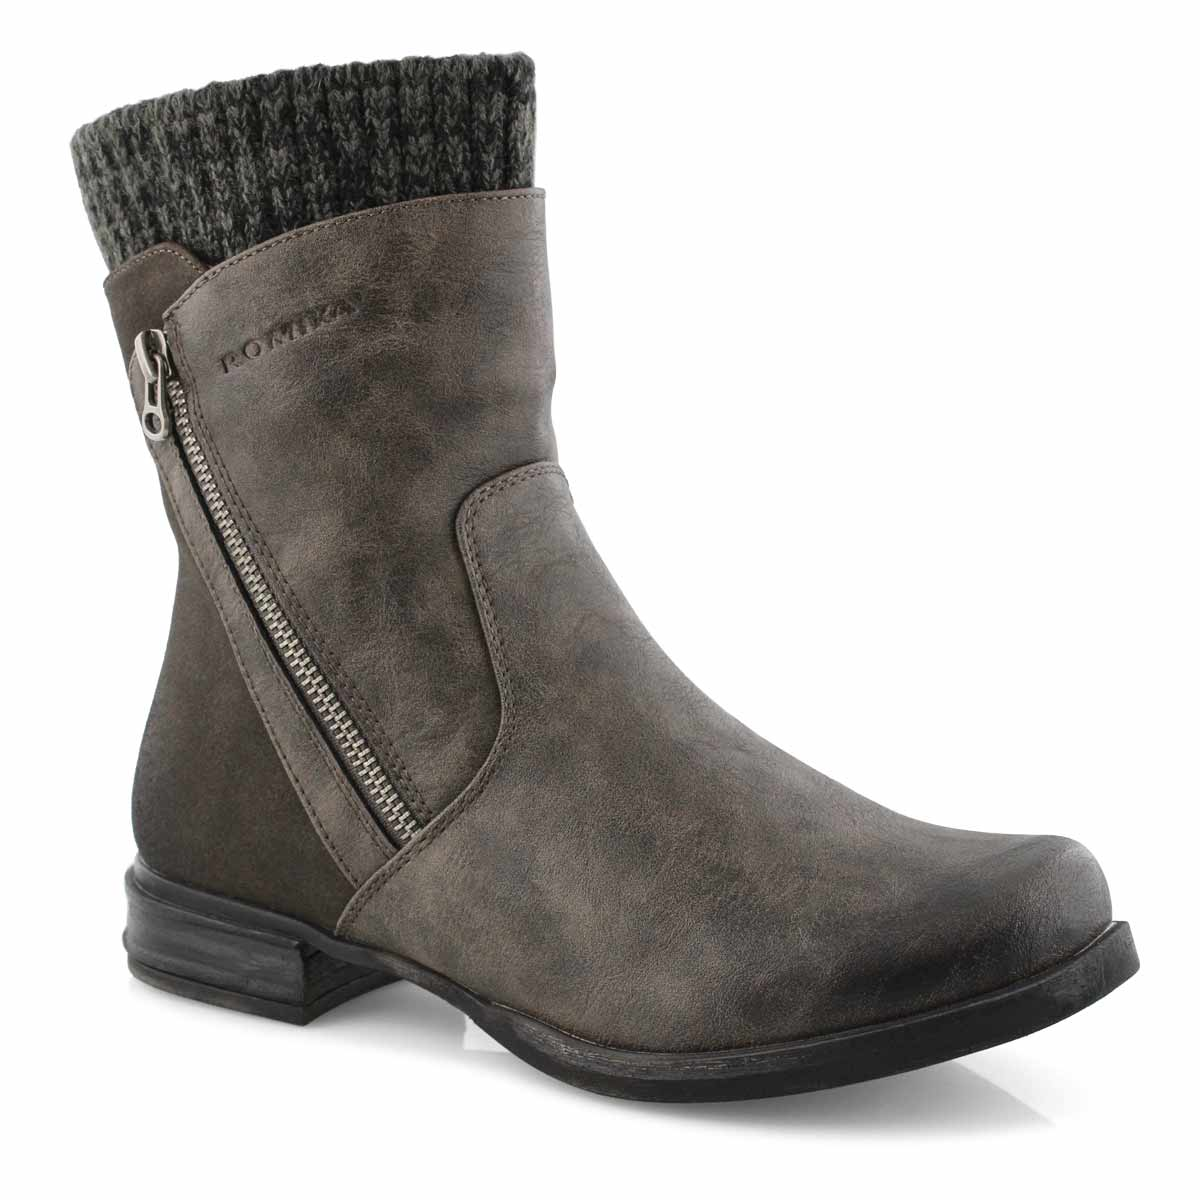 Lds Venus 04 anthracite ankle boot